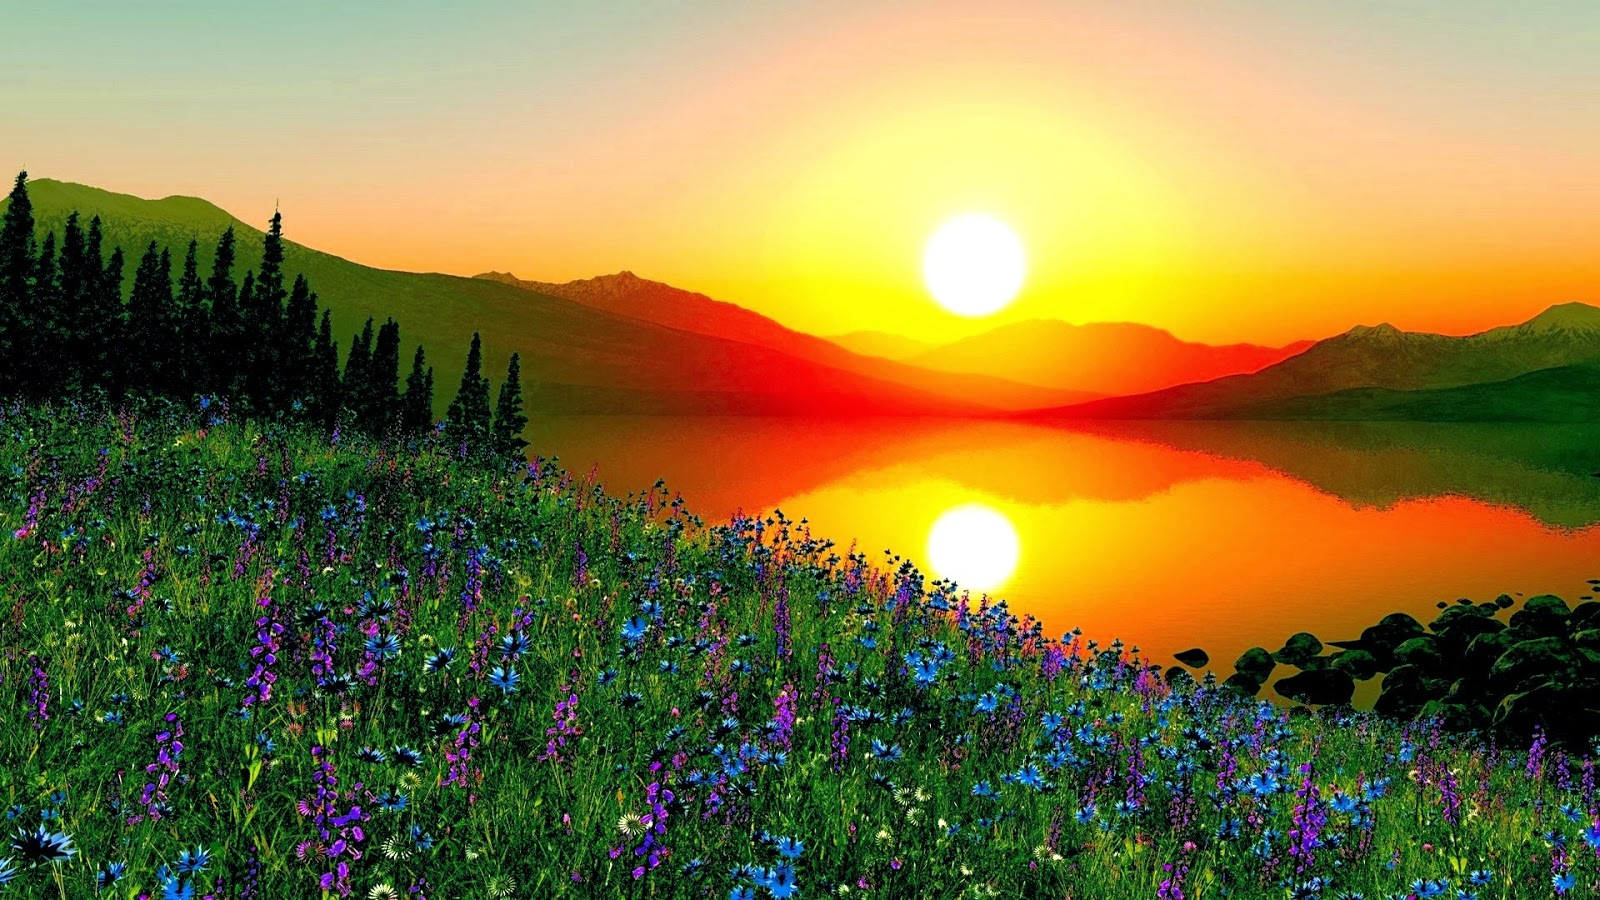 Sunrise Wallpapers | Most beautiful places in the world | Download